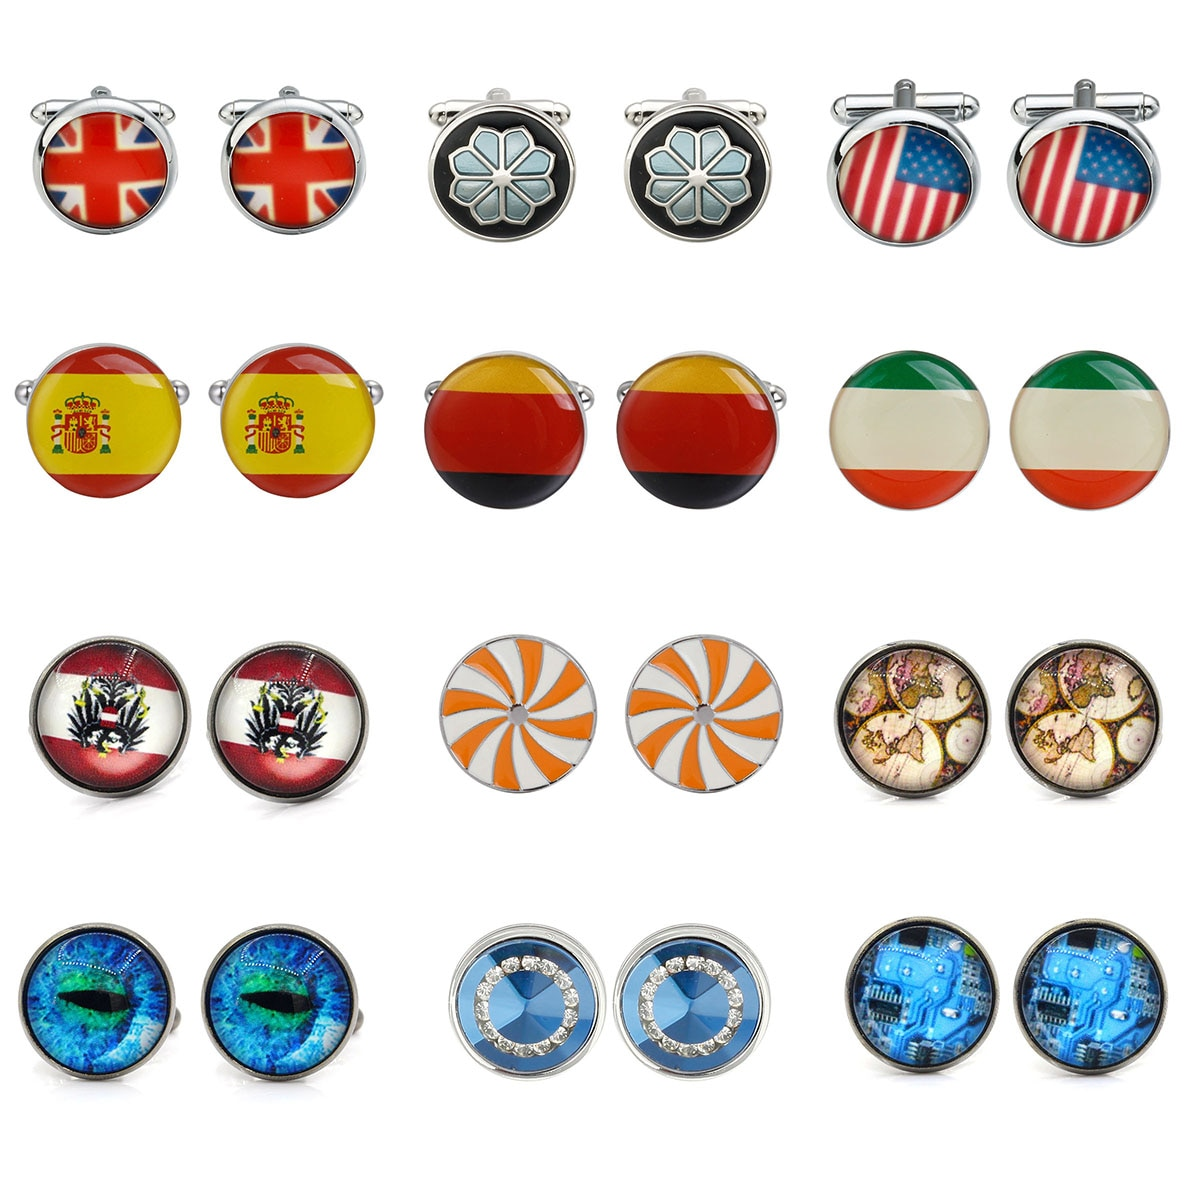 Luxury New Shirt Cufflinks for mens Brand cuff buttons National Flag cuff links gemelos High Quality abotoaduras Jewelry luxury fashion laser engraved check sudoku design cufflink 18 style for mens brand cuff buttons cuff links high quality jewelry